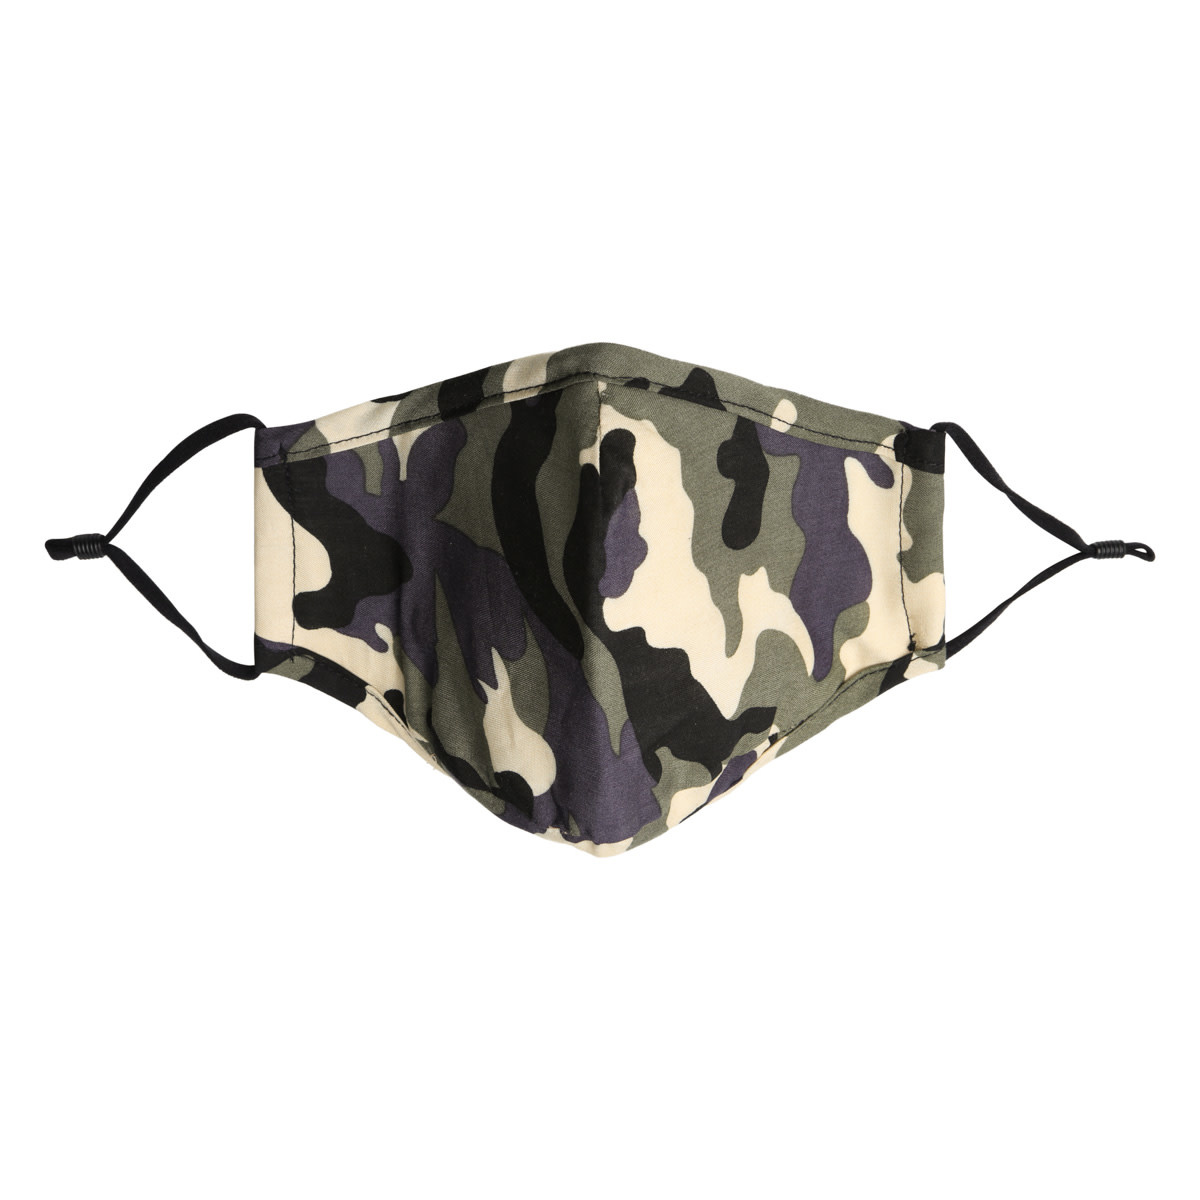 With love Mouth mask  Camou- khaki green